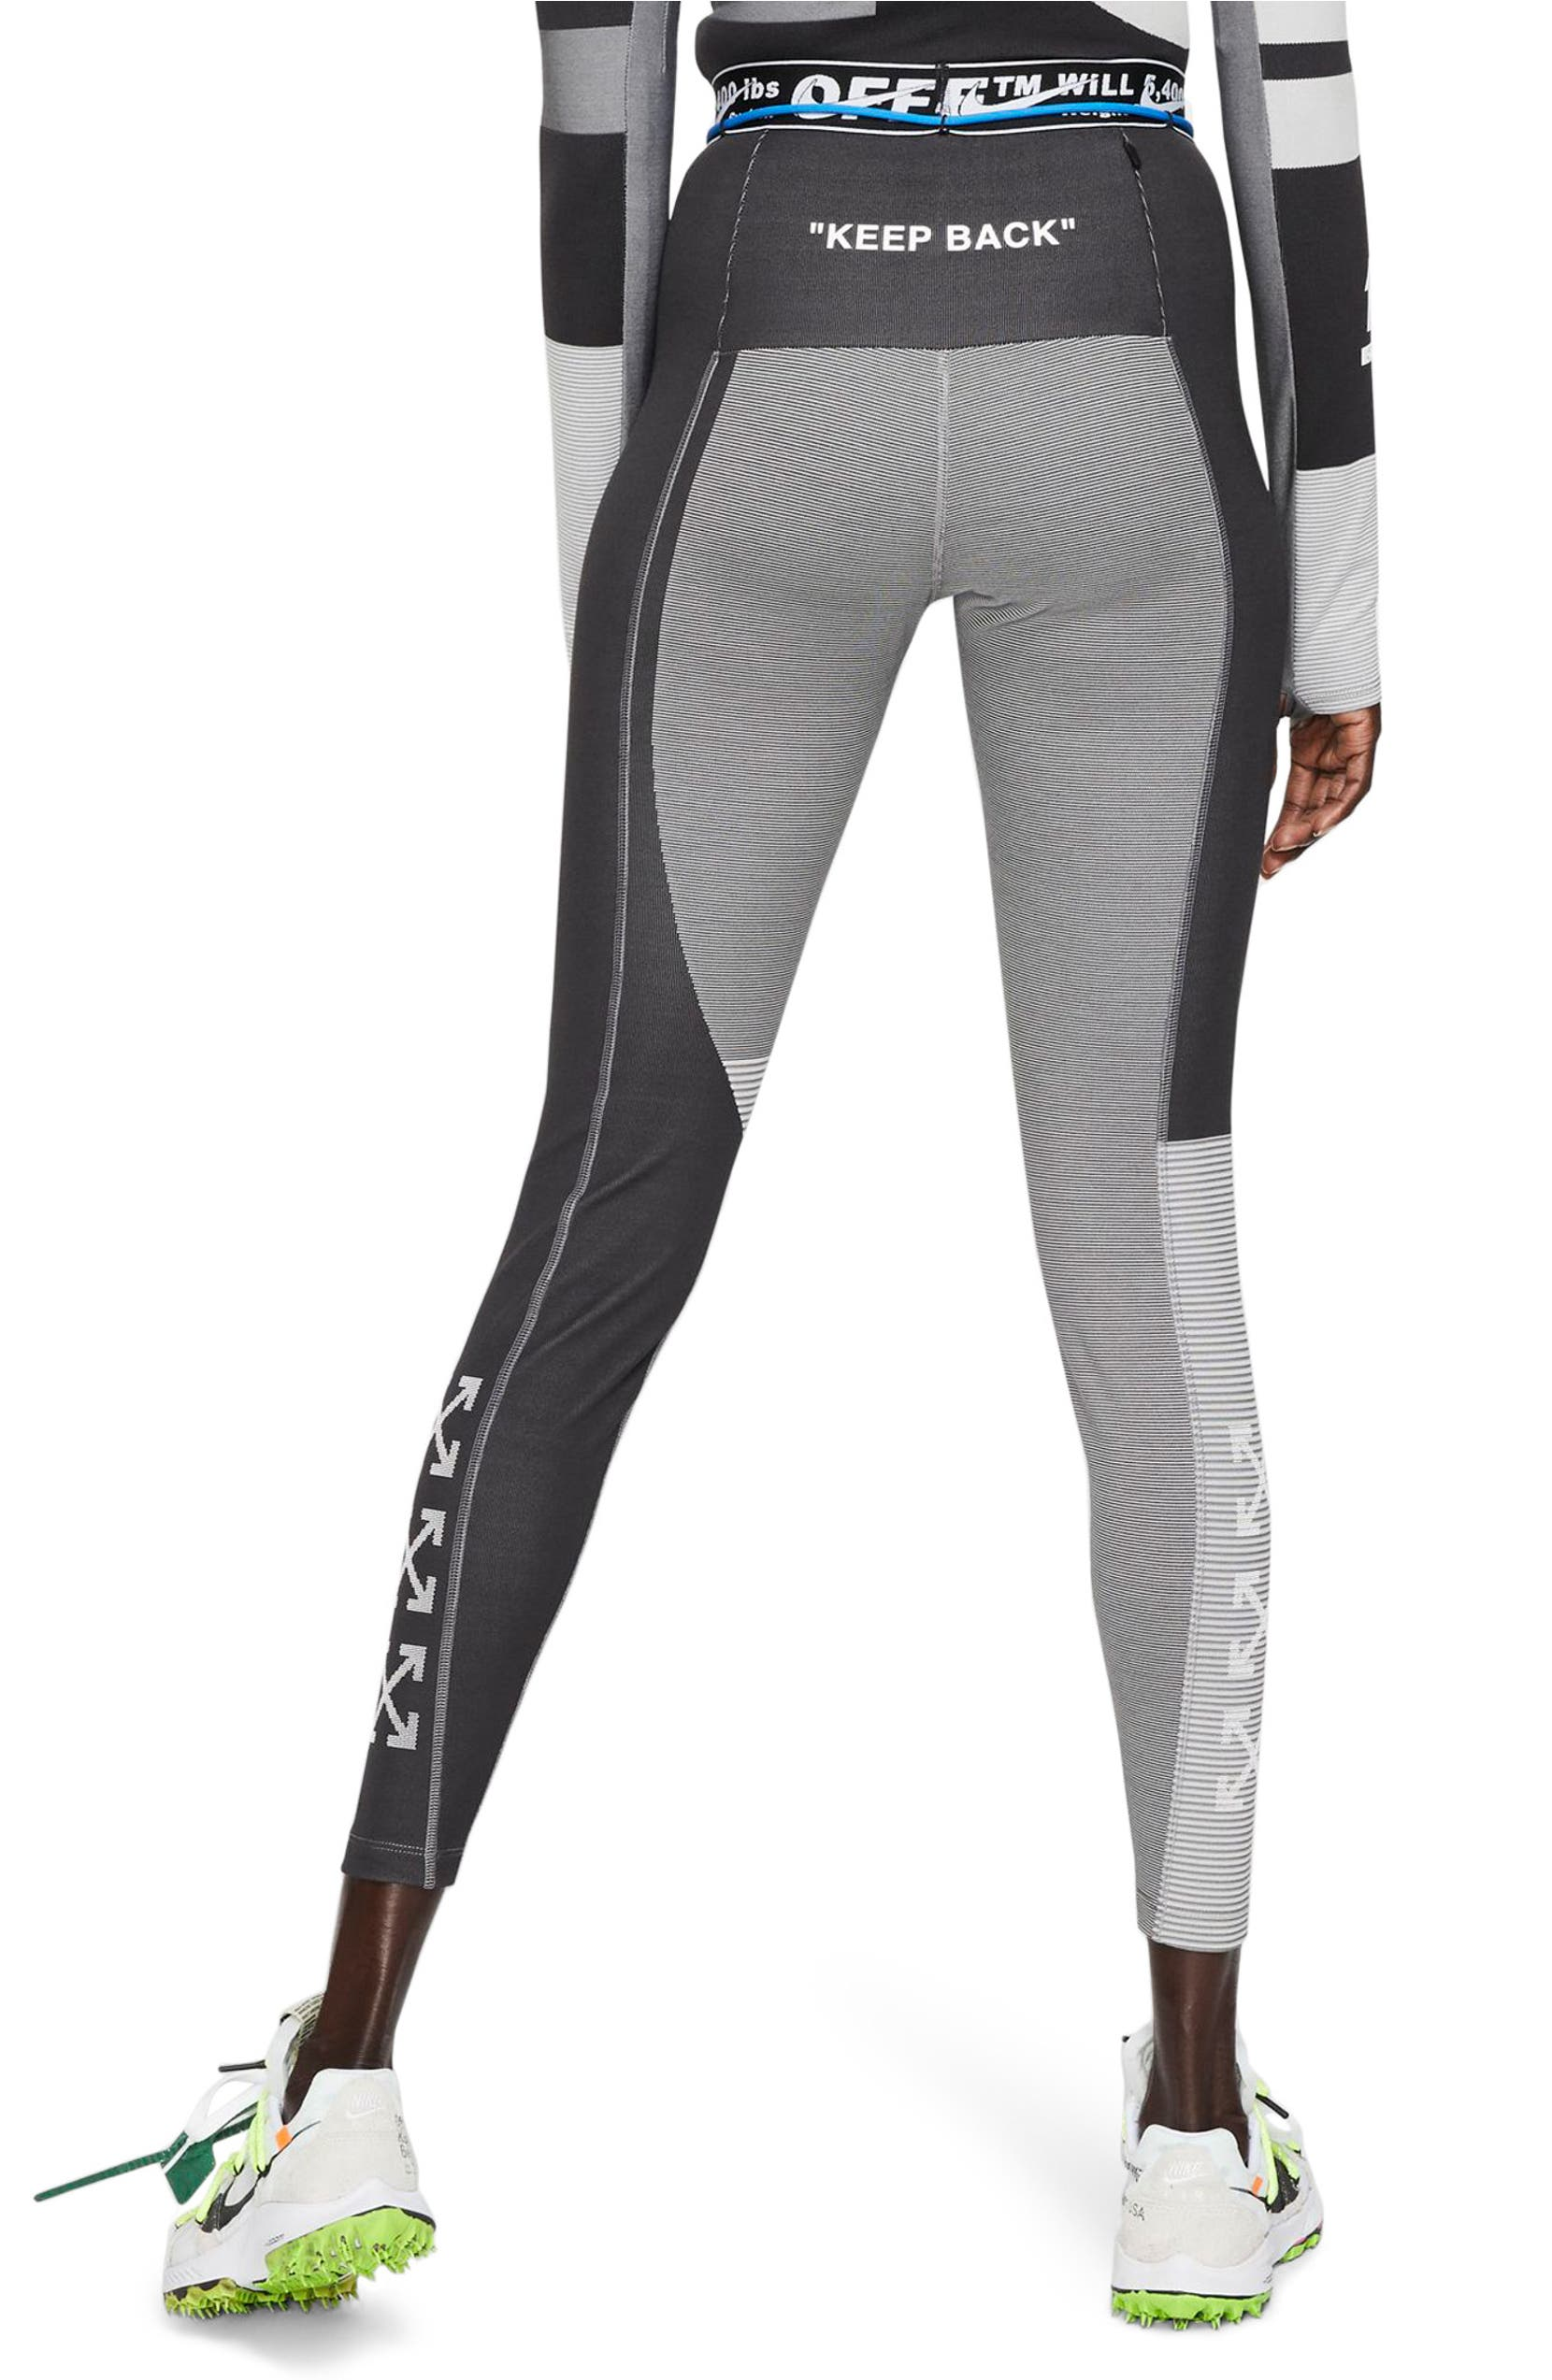 876fa7546 x Off-White Dri-FIT Running Tights